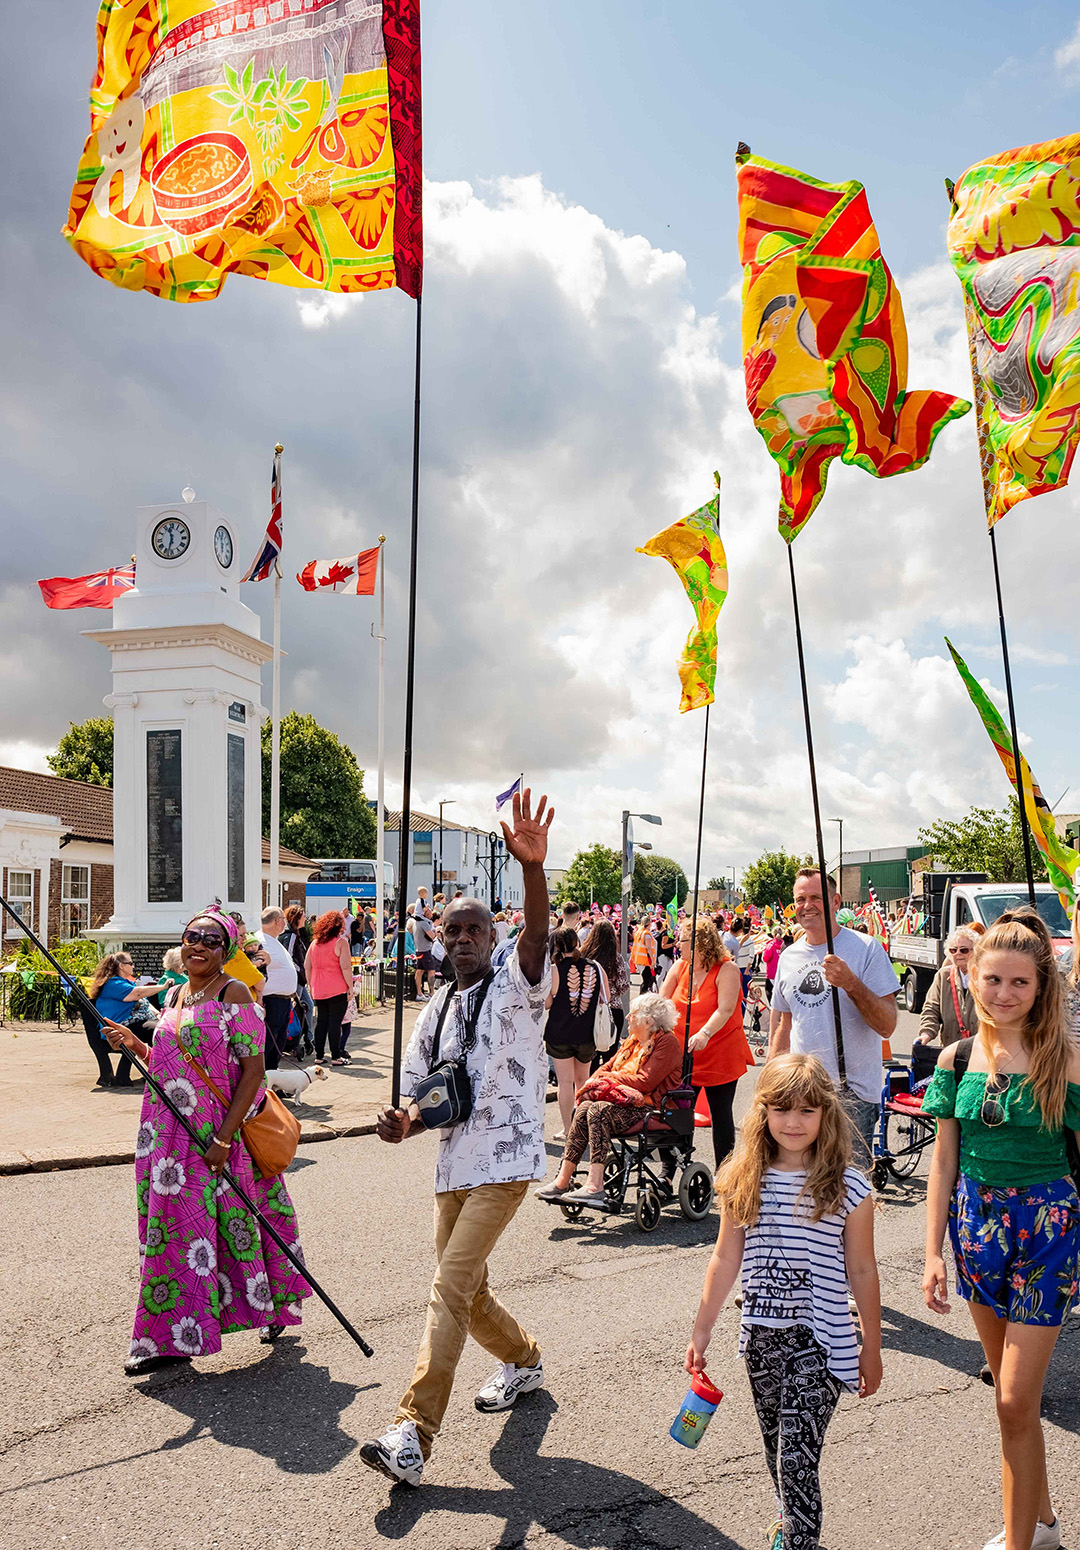 Tilbury flags at carnival